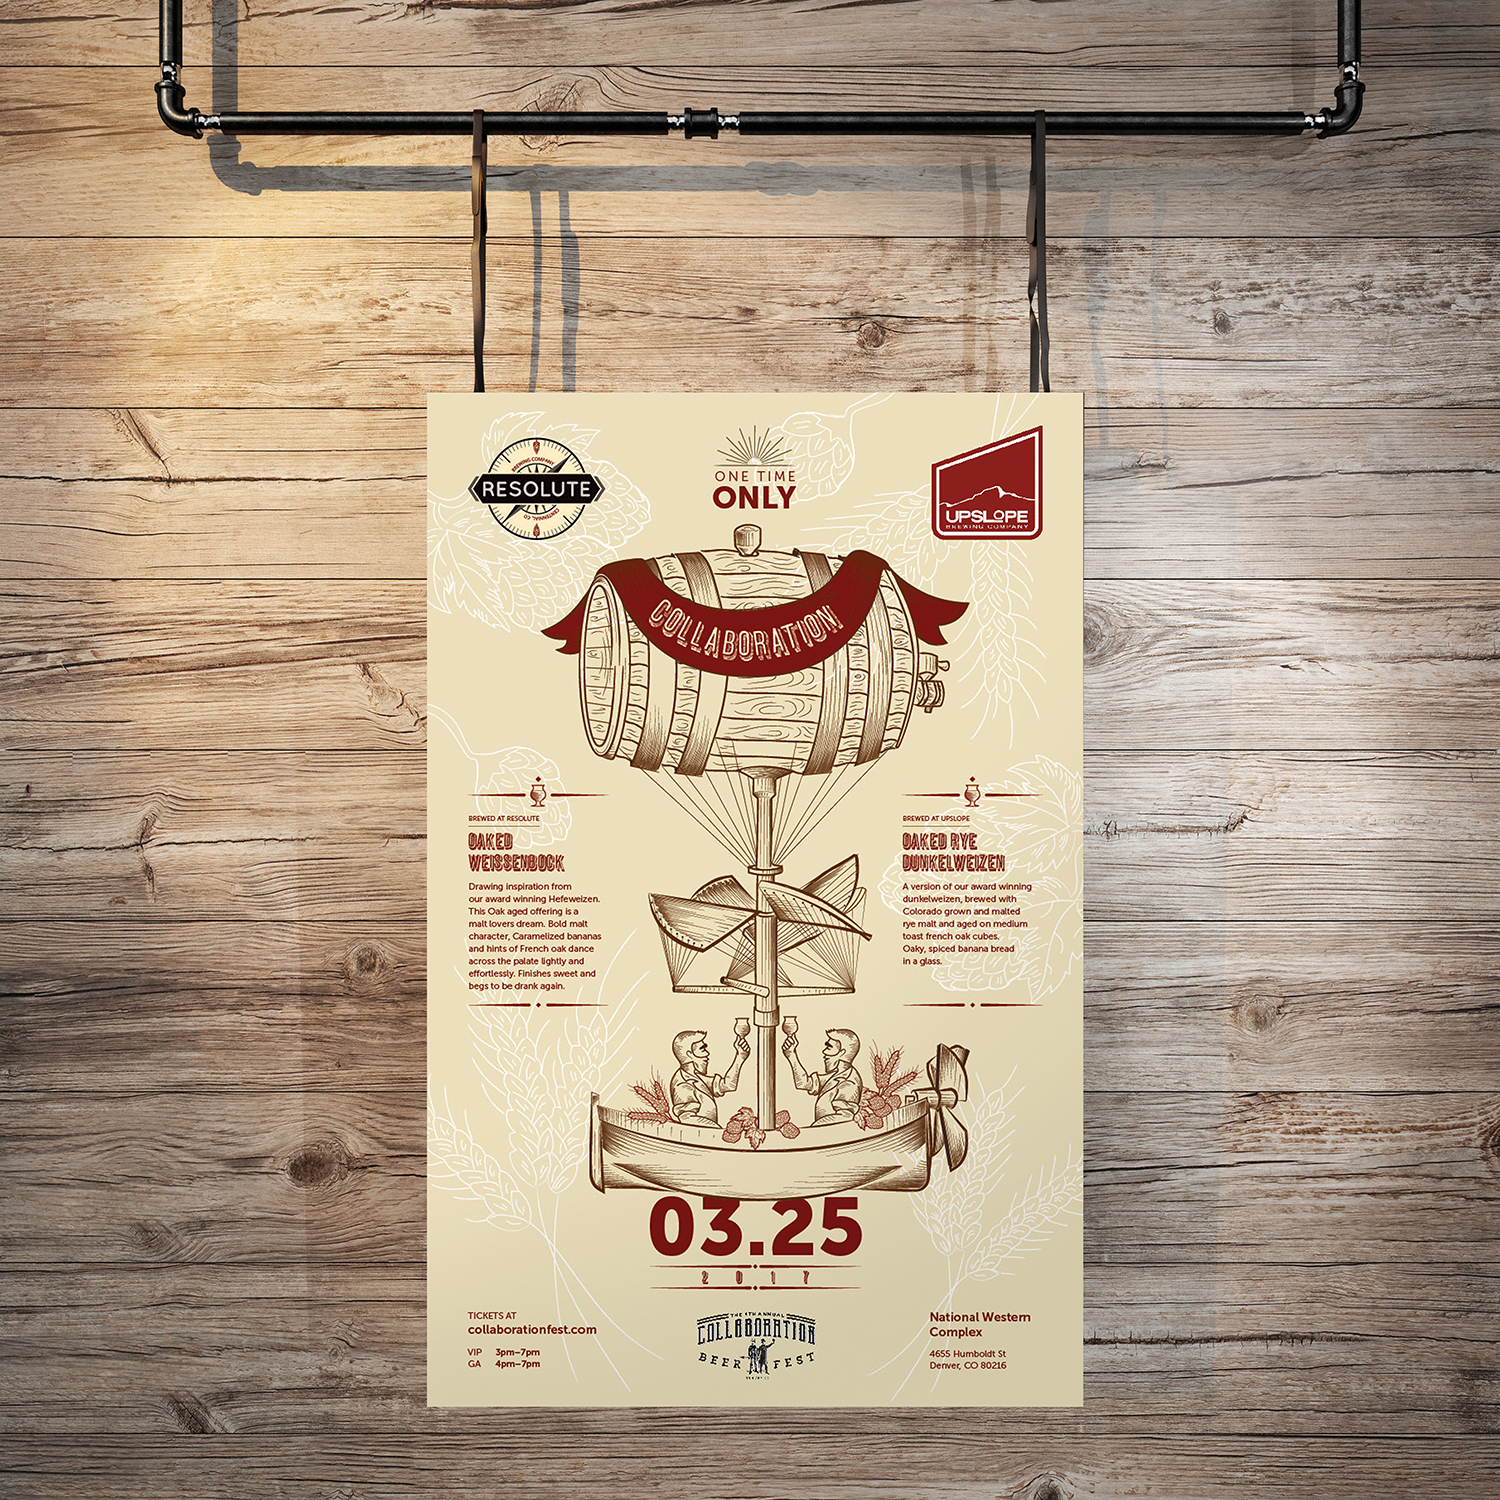 Poster design for Collaboration Fest to host both Resolute's and Upslope's brands under one concept. Hand drawn illustration.